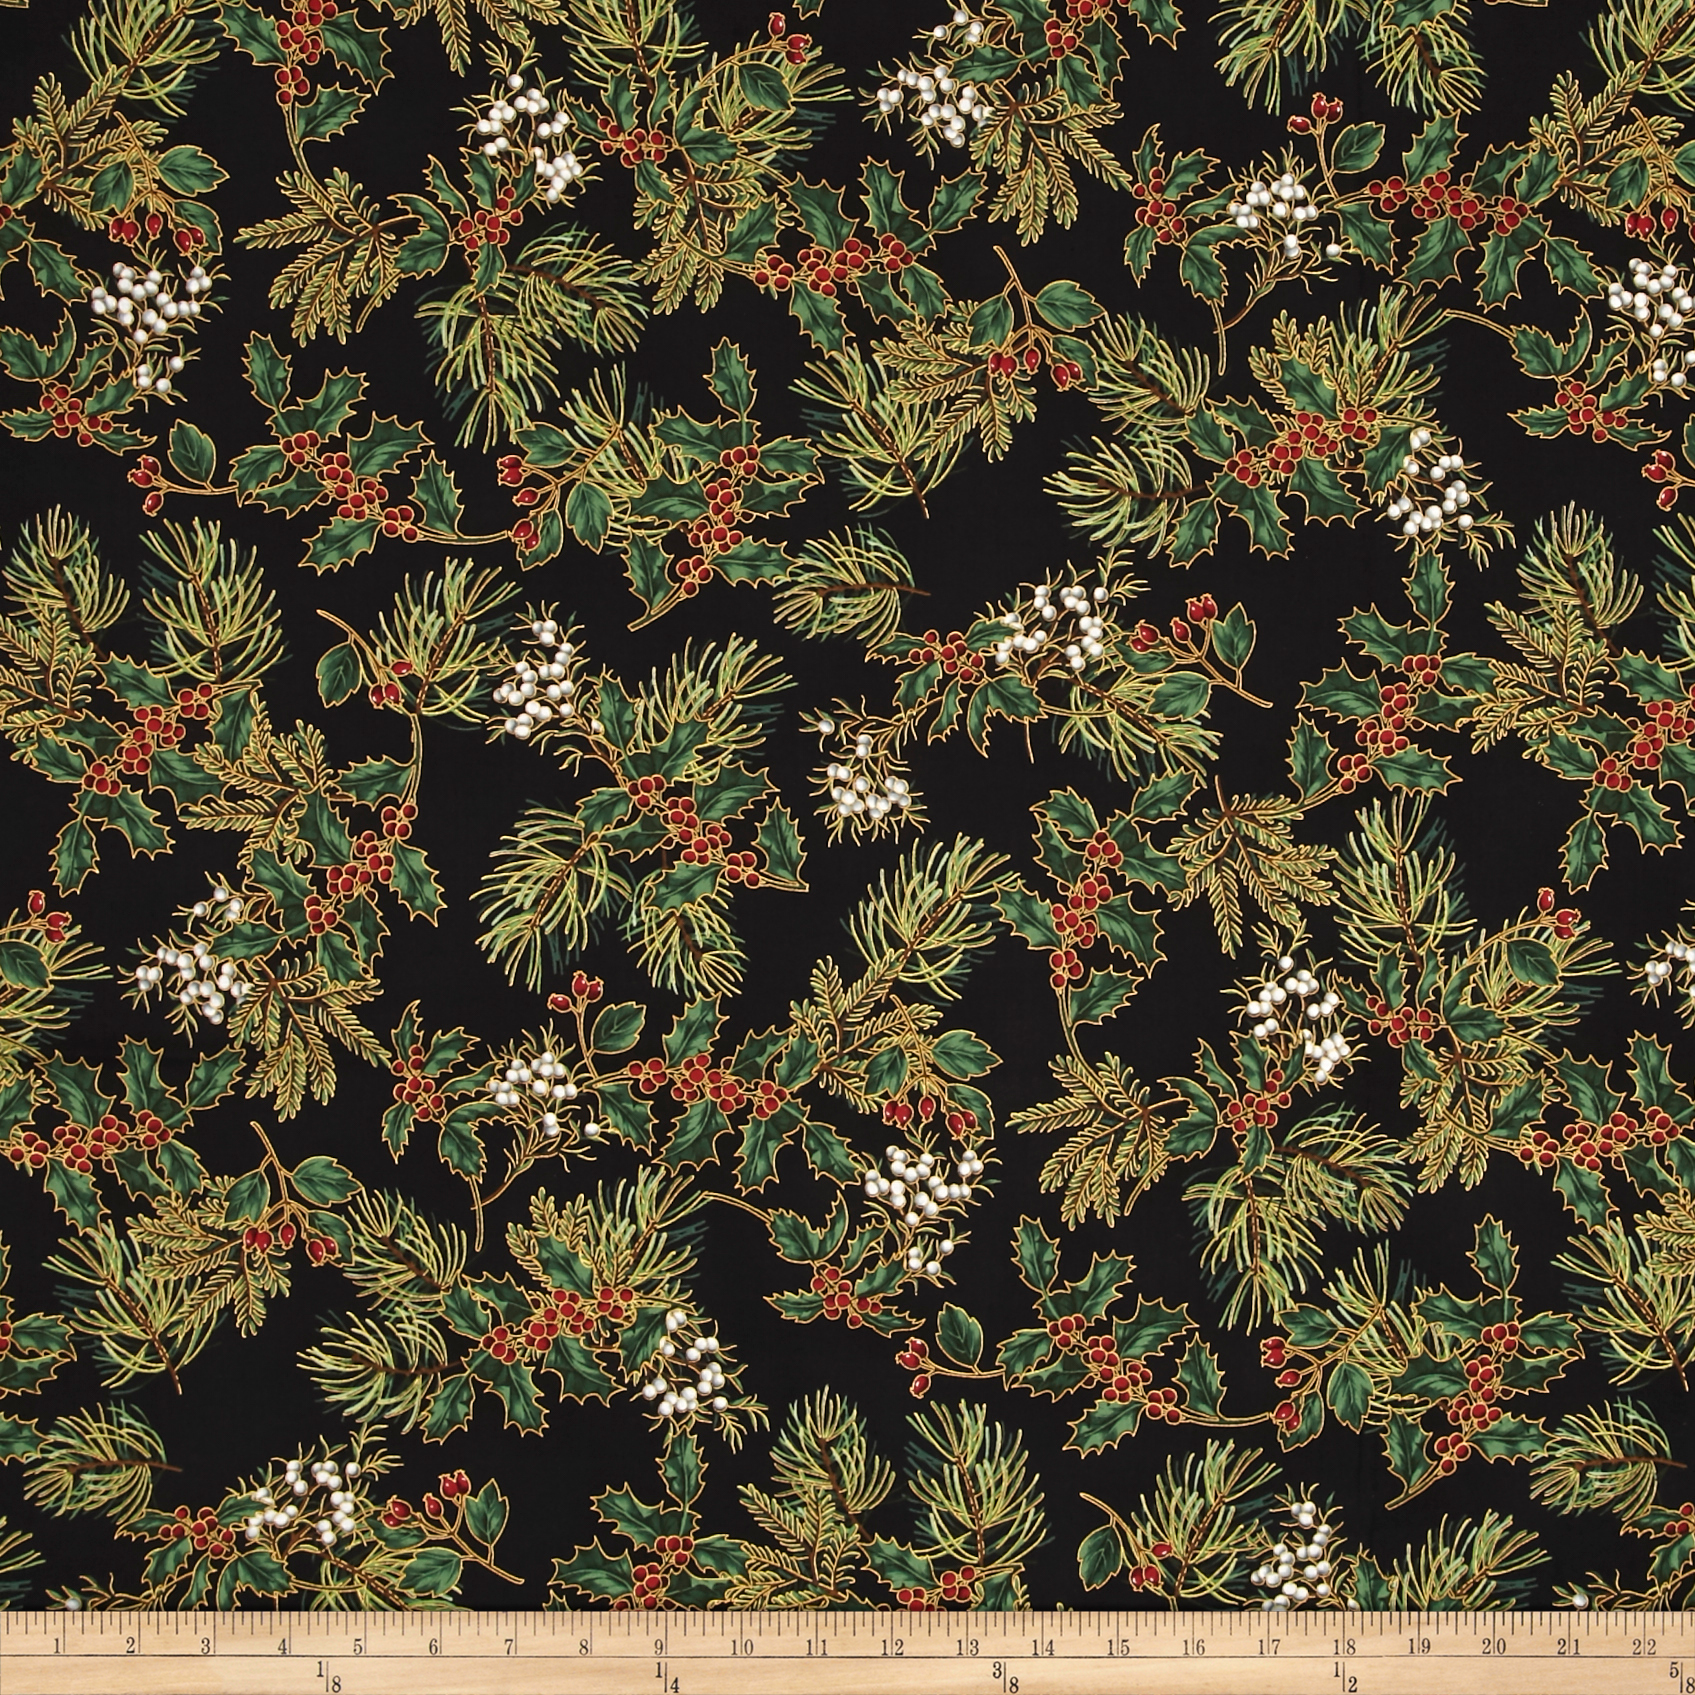 Warm Wishes Metallic Holly and Berries Black/Gold Fabric by Hoffman of California in USA